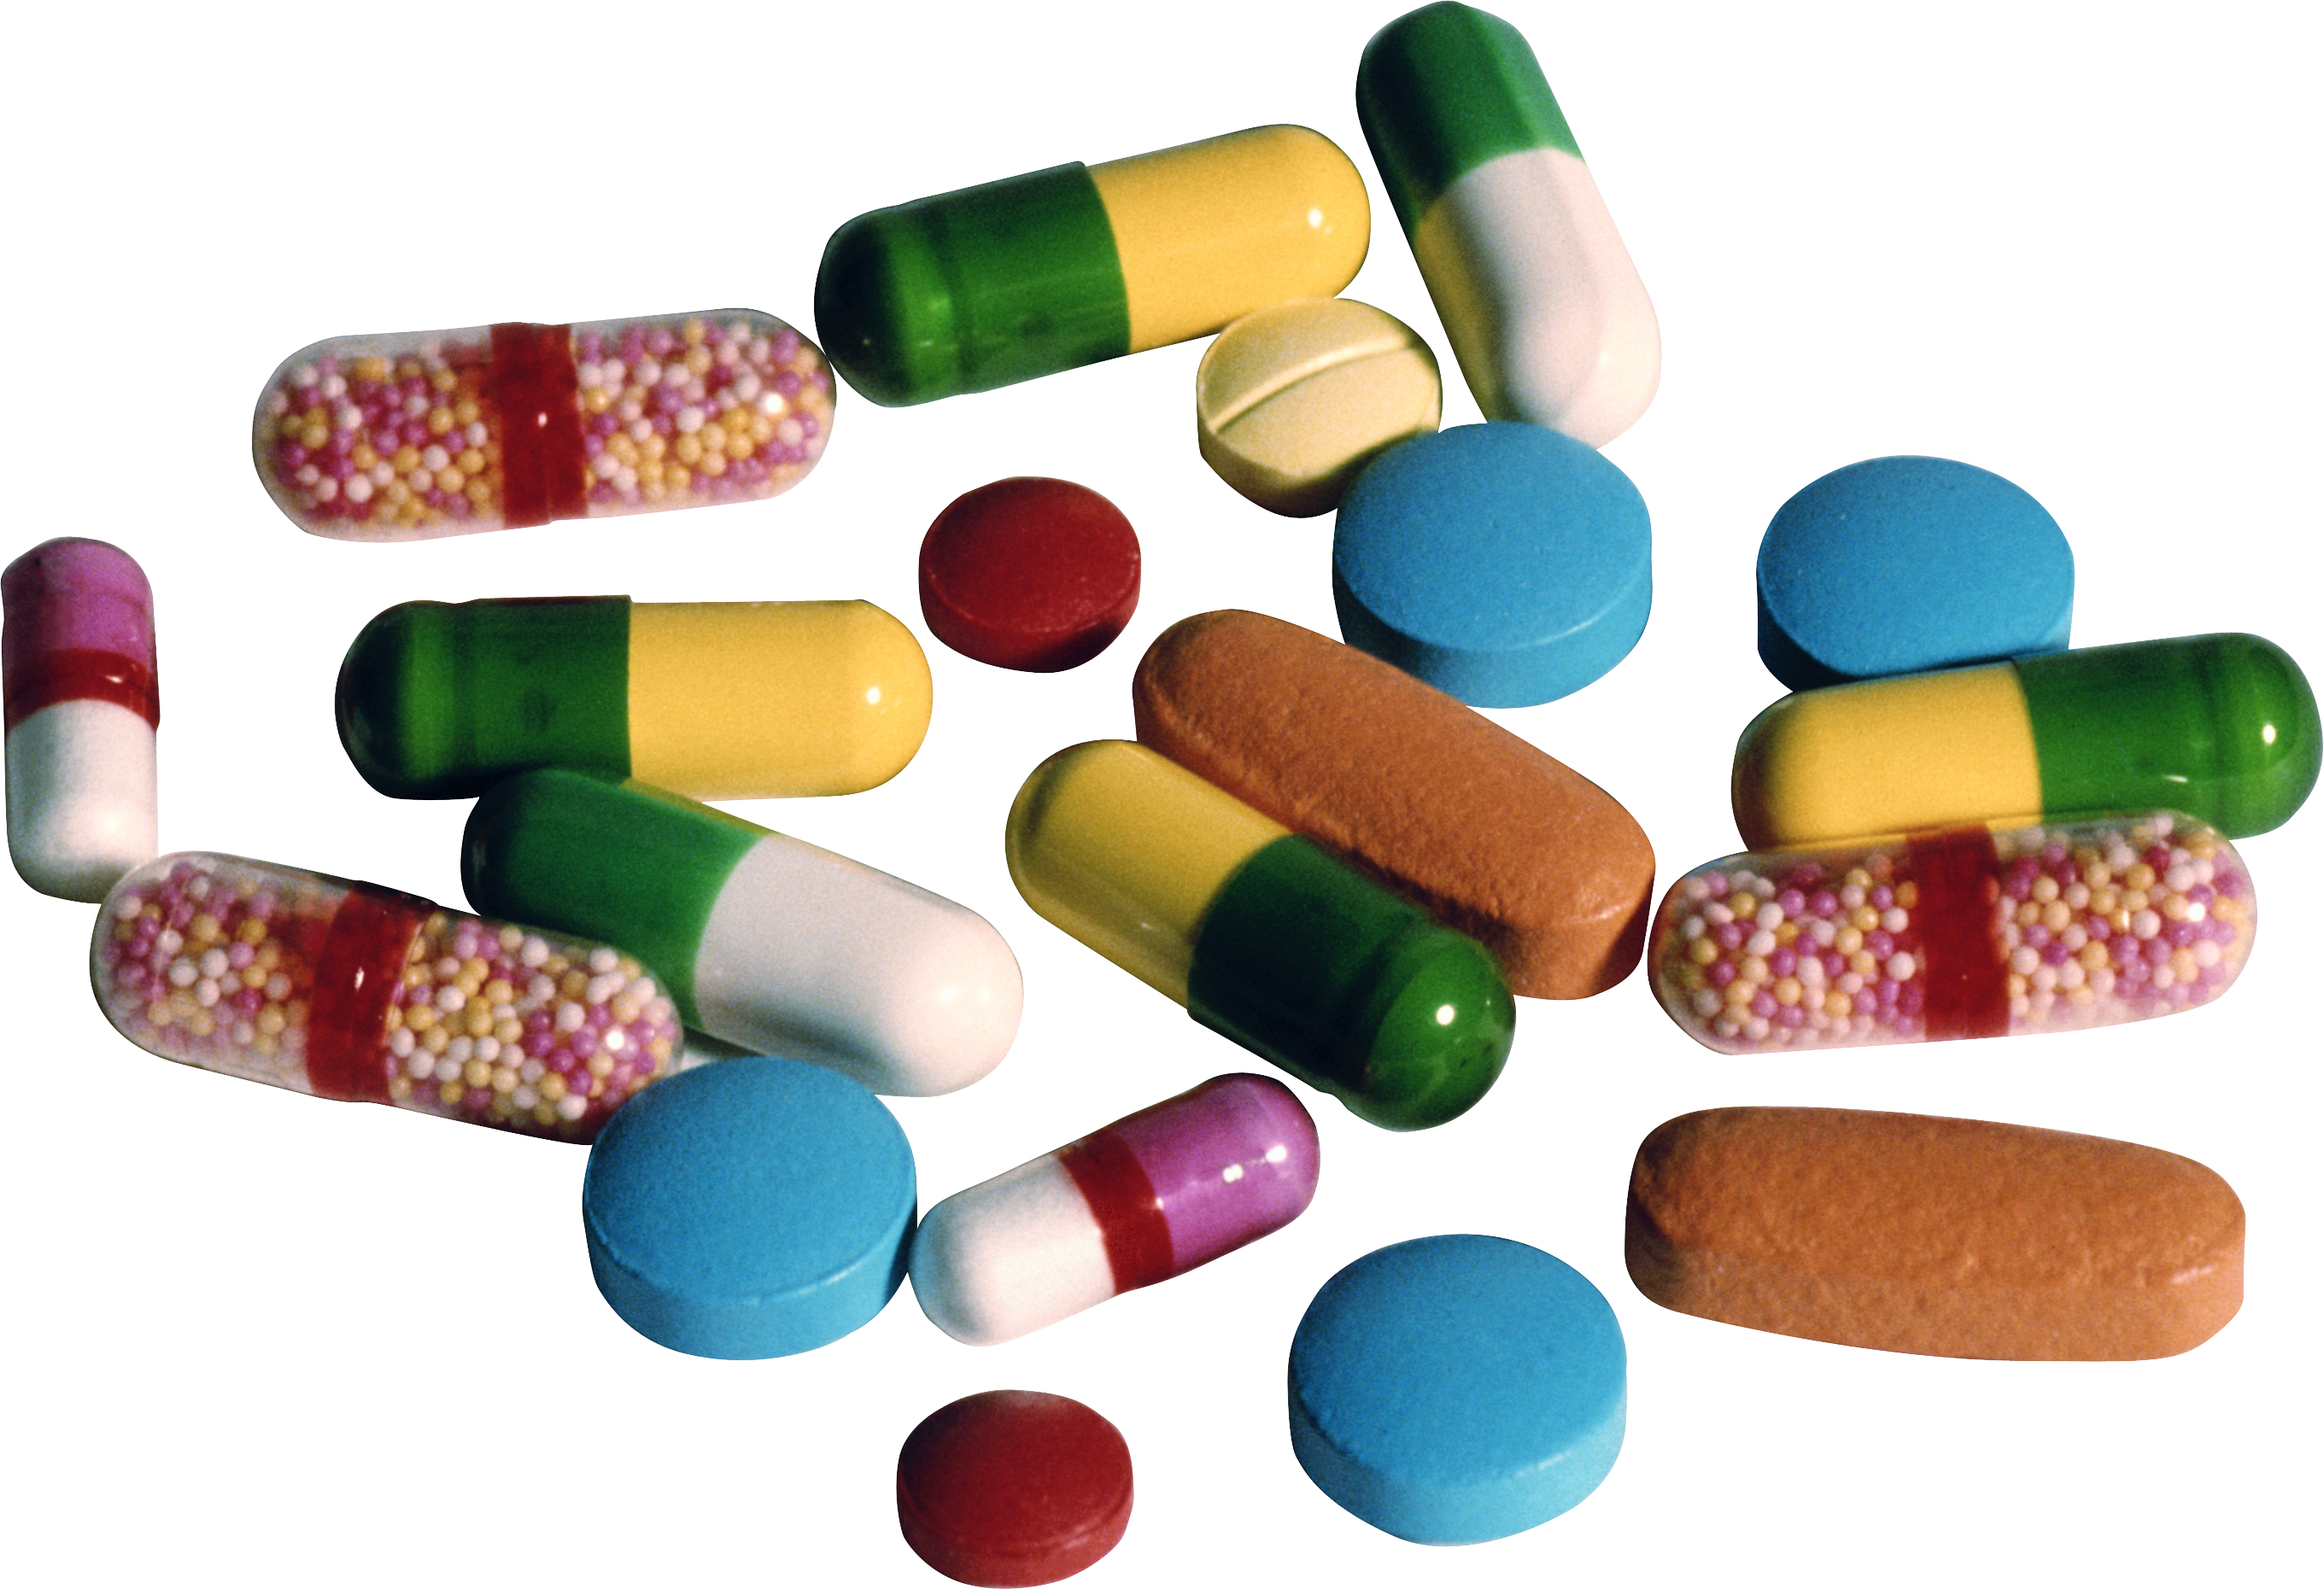 Free download of Pills PNG Image